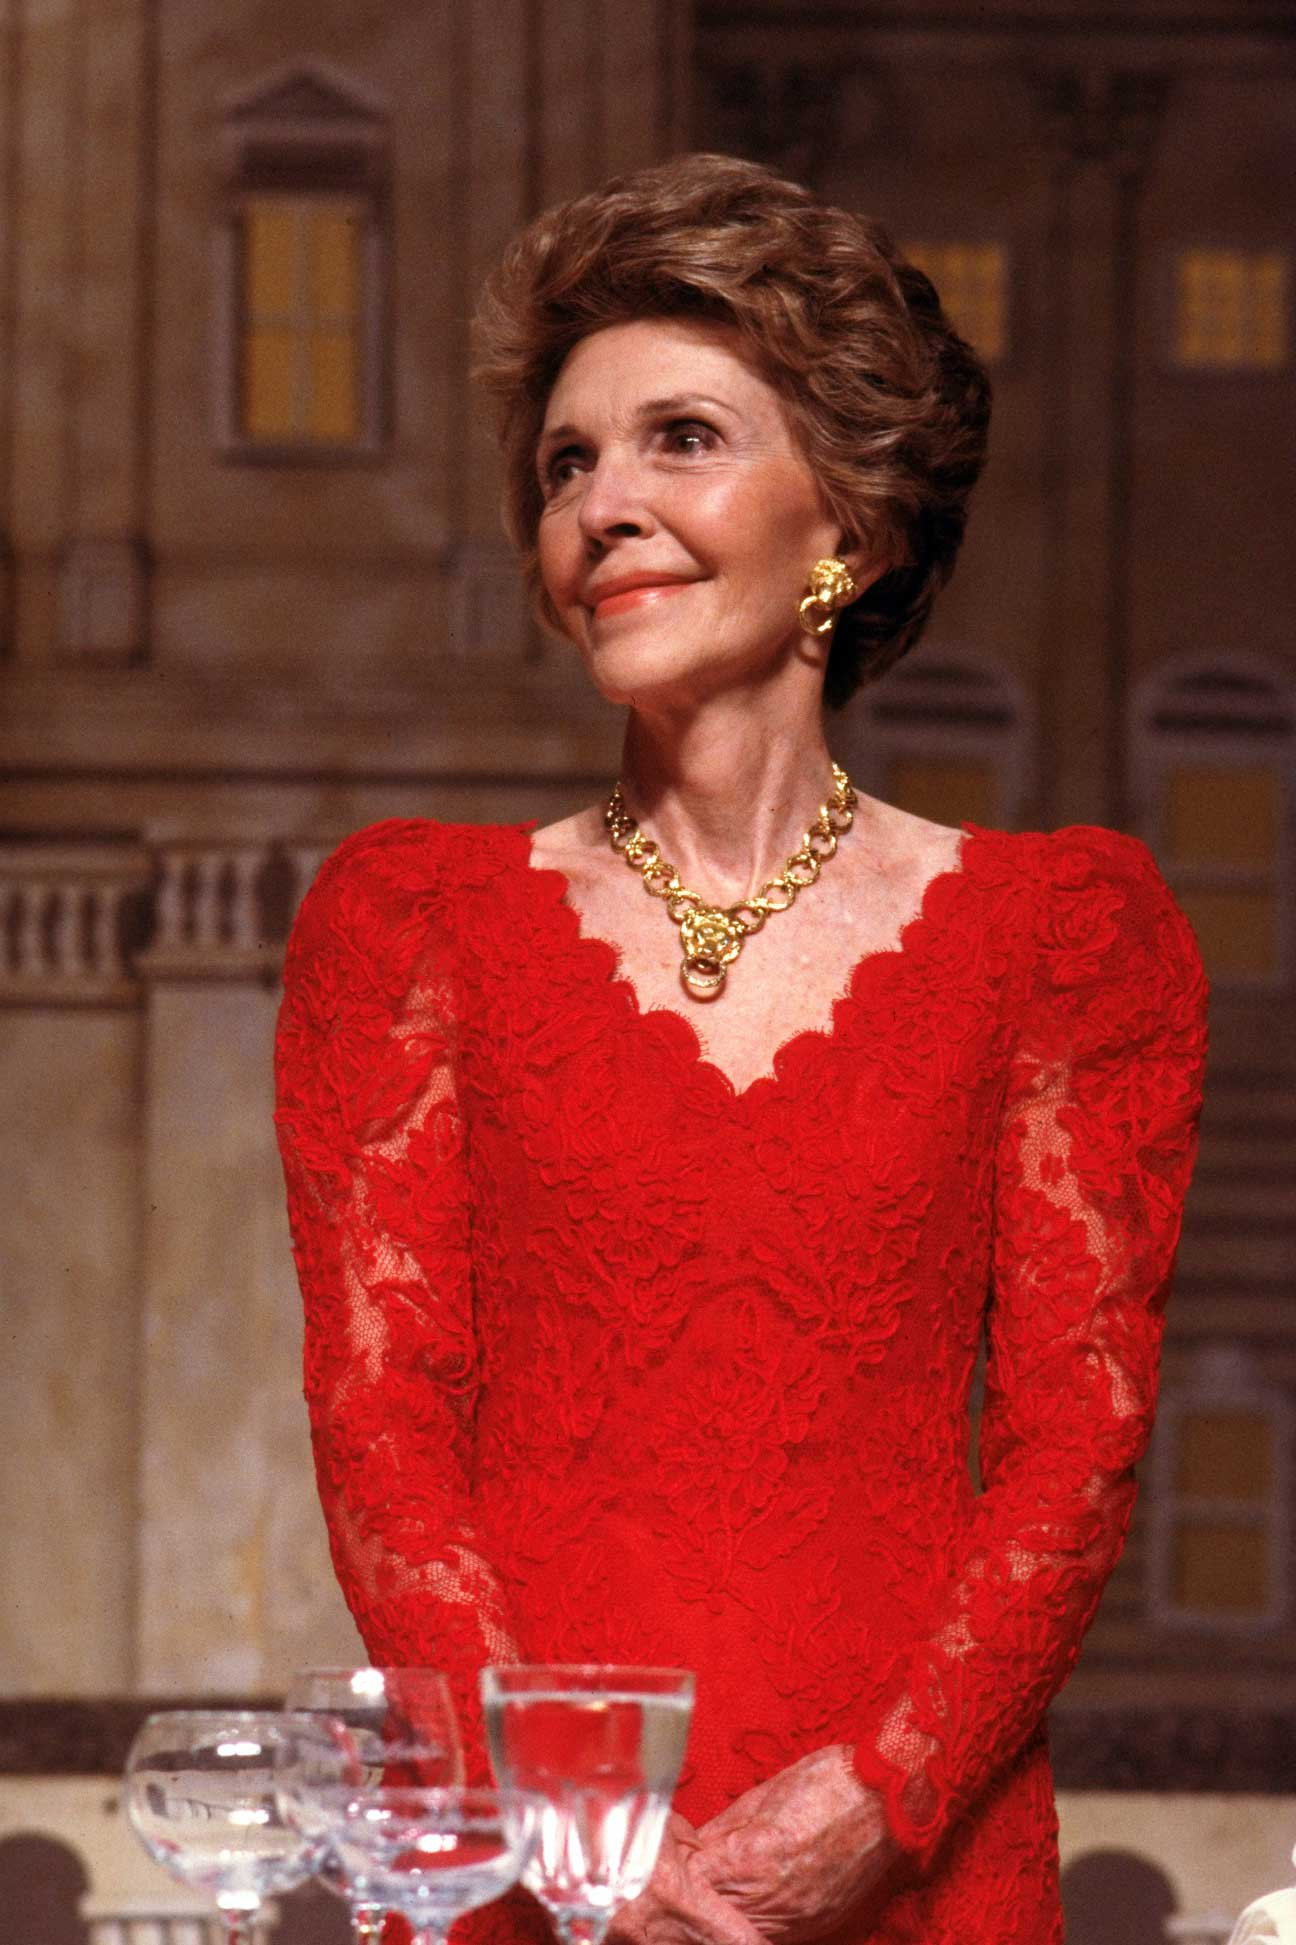 Nancy Reagan, decked out in red lace dress, gold earrings and necklace set, at  President's dinner  in Washington on May 11, 1988.